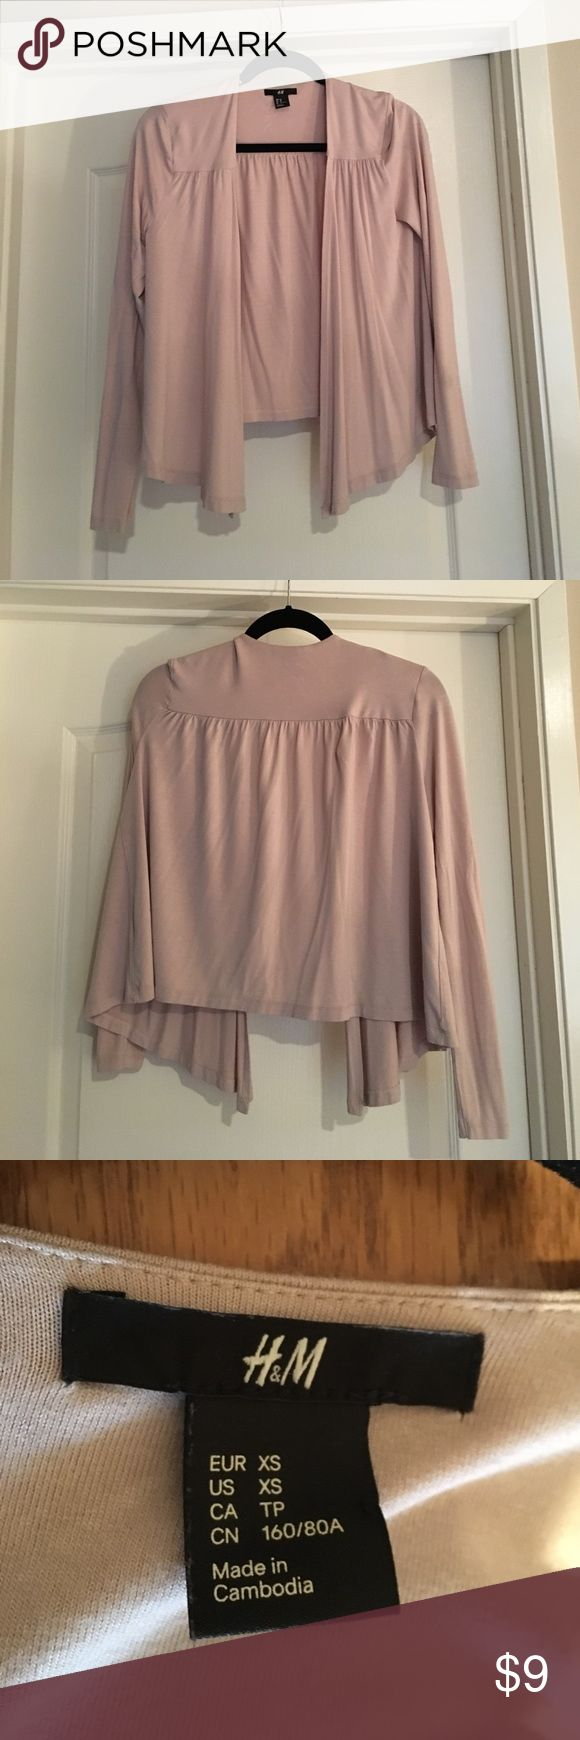 H&M women's top size extra small H&M beige women's top size extra small. Used. Good condition. Made in Cambodia. Open in front, with no buttons. Sorry, the tag about fabric and Care has been removed. H&M Tops